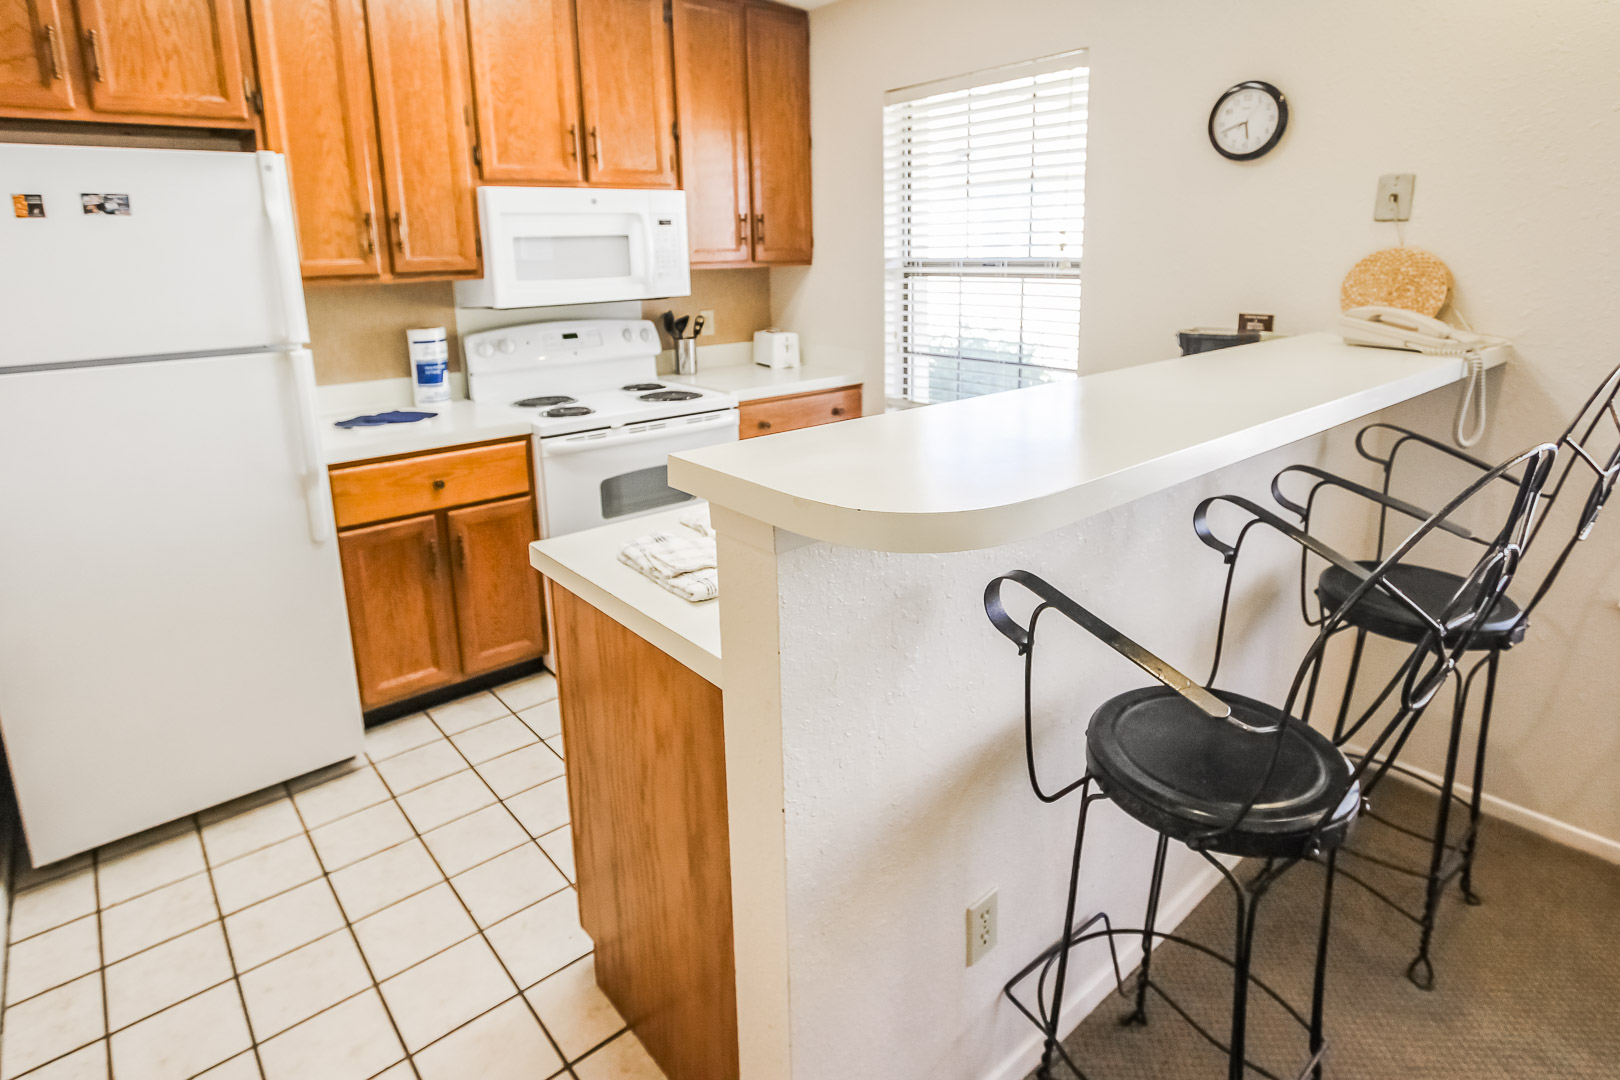 Shores at Lake Travis - Unit Amenities - Kitchen